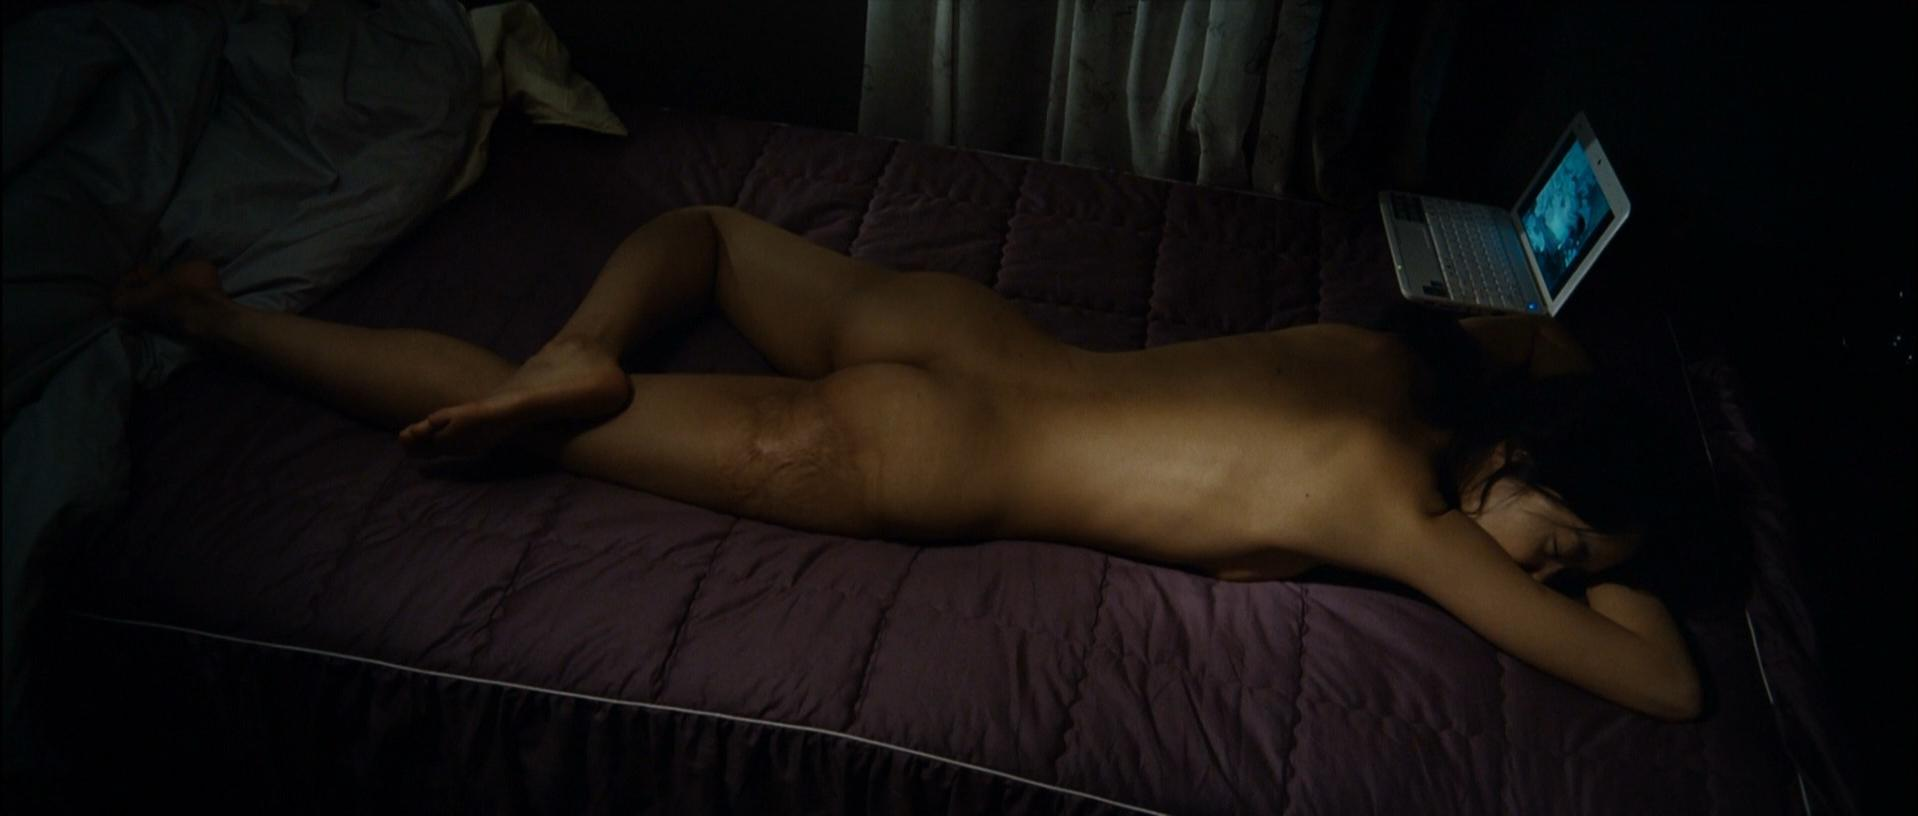 Do-yeon Jeon nude - The Housemaid (2010)